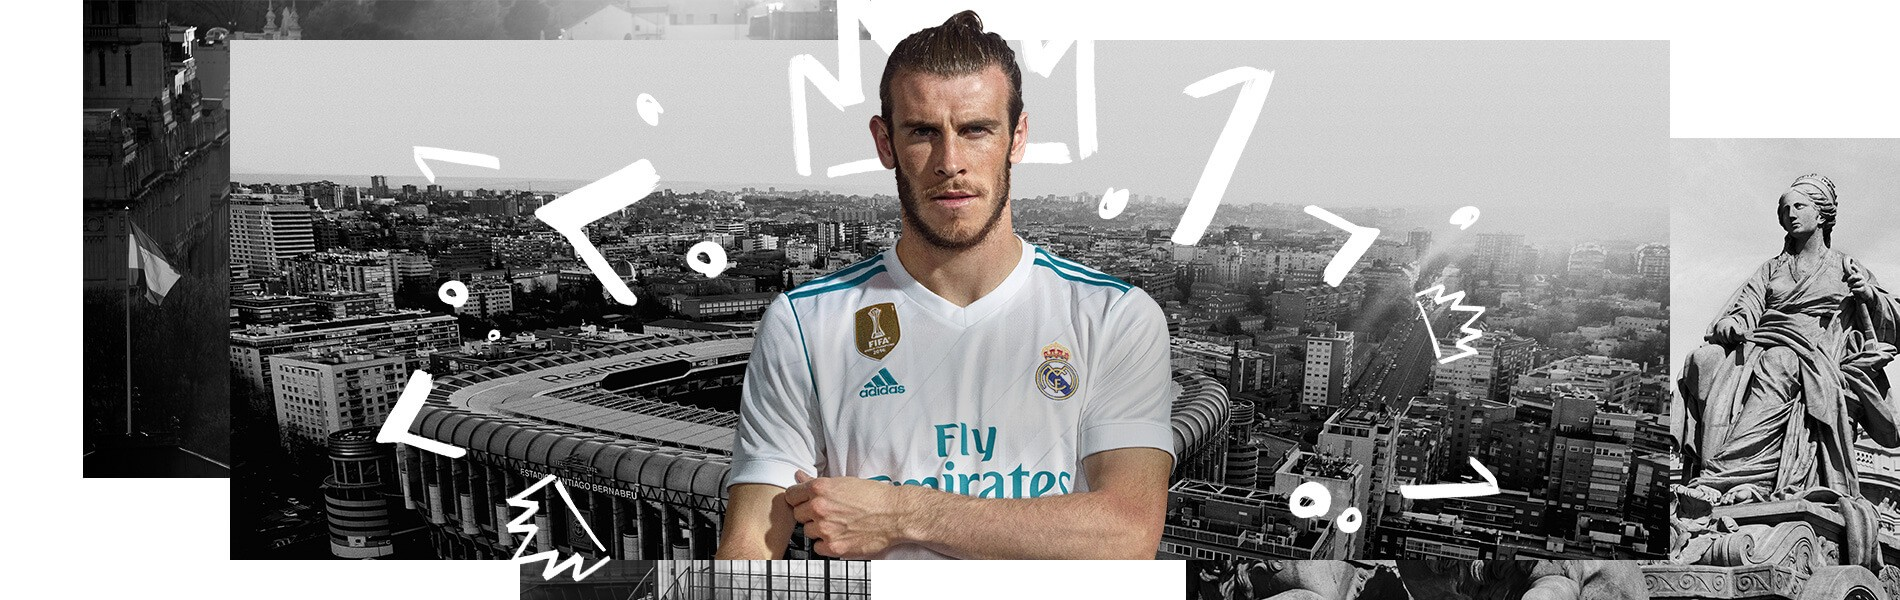 Nové dresy Real Madrid 2017/18